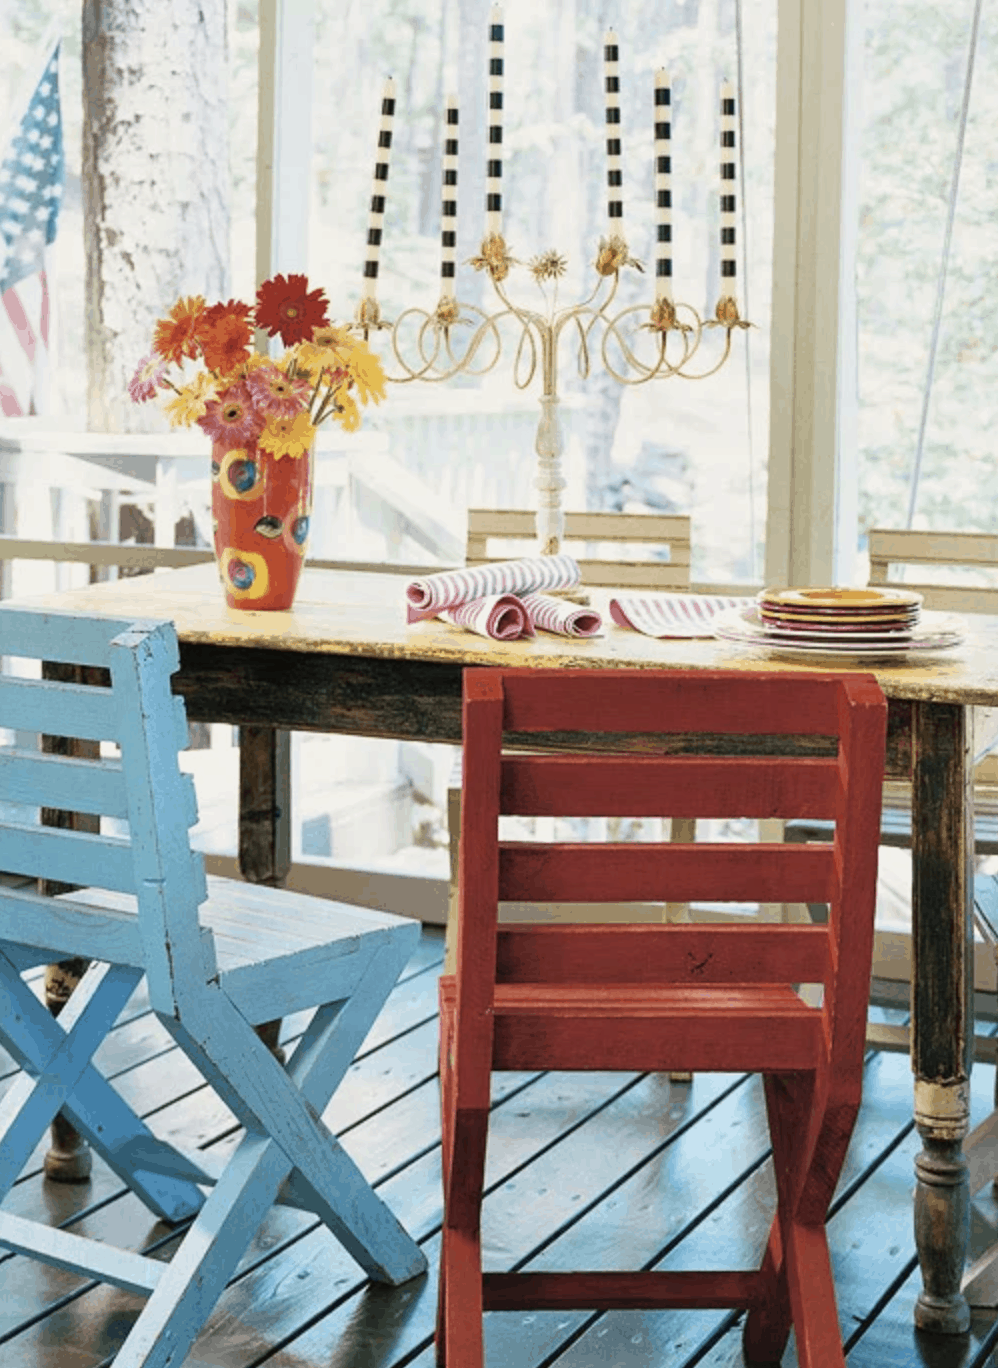 outdoor porch decor in single wide mobile home featured on BHG